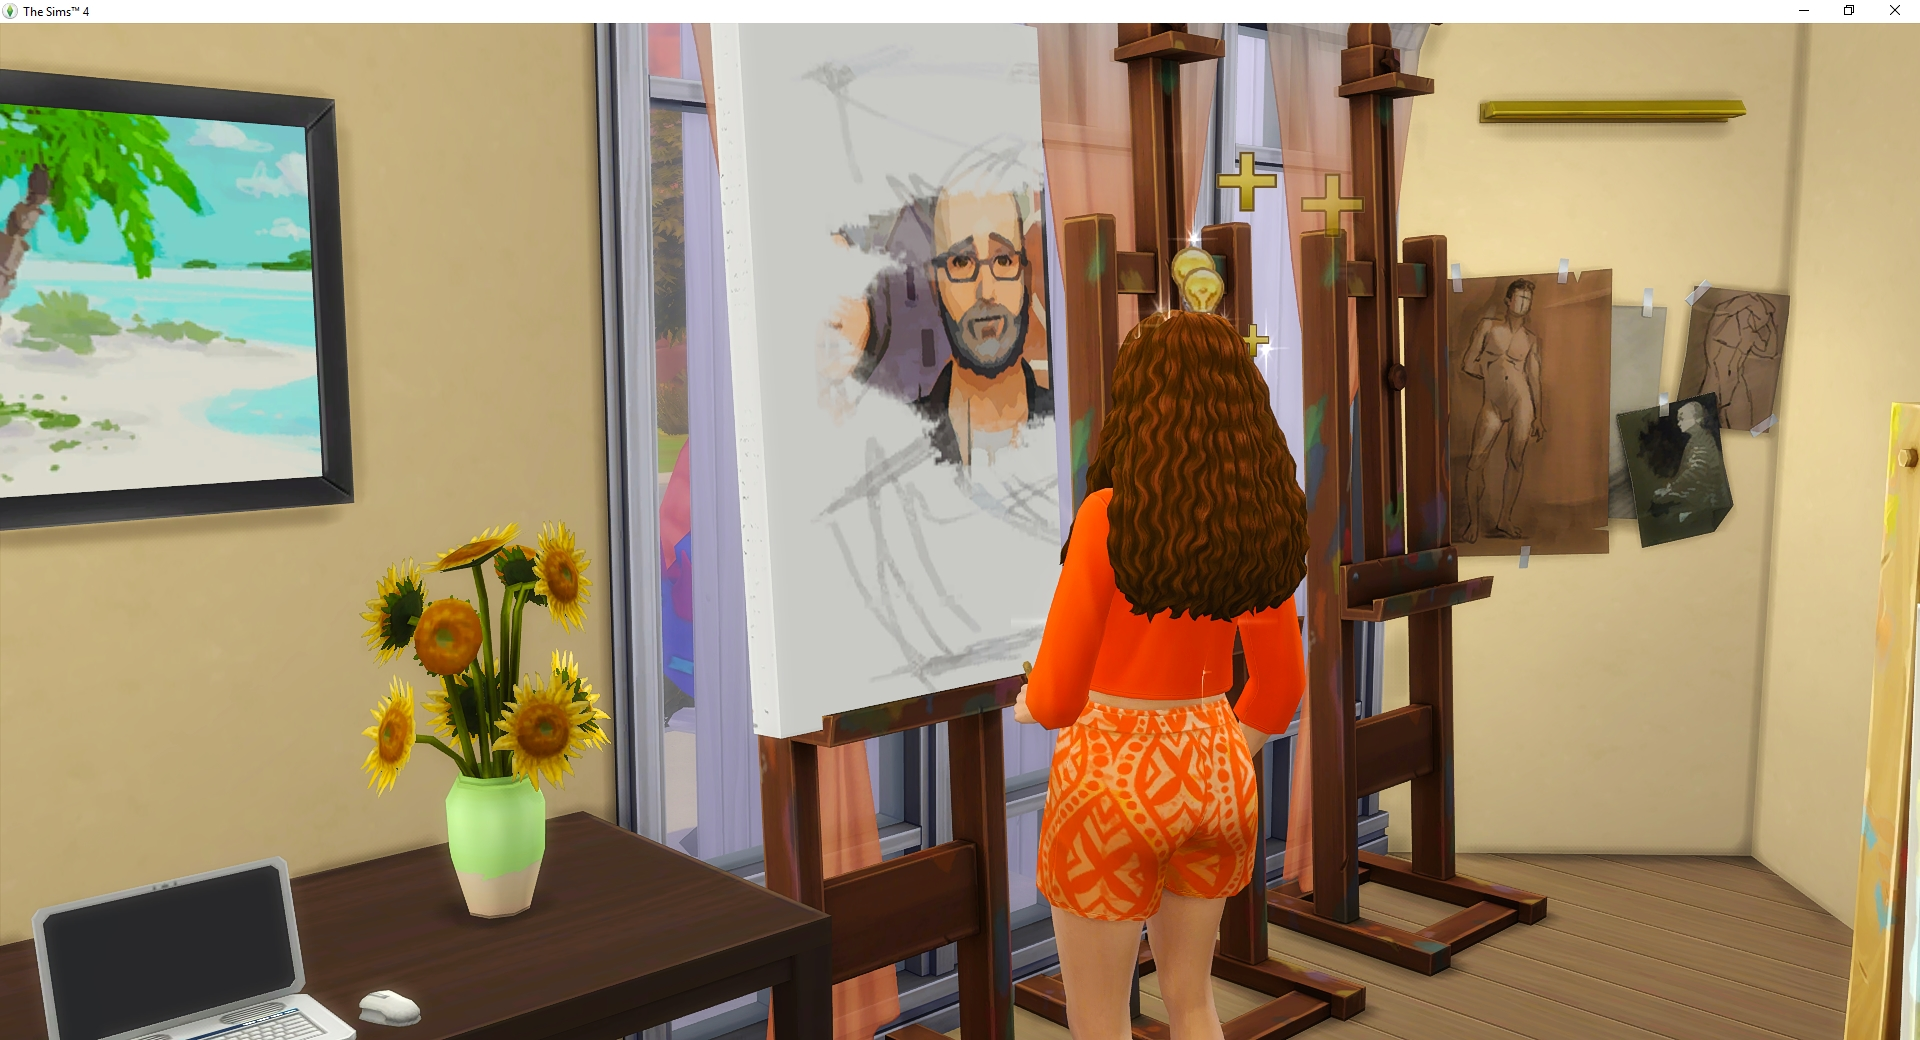 2019-06-30 19_19_18-The Sims™ 4